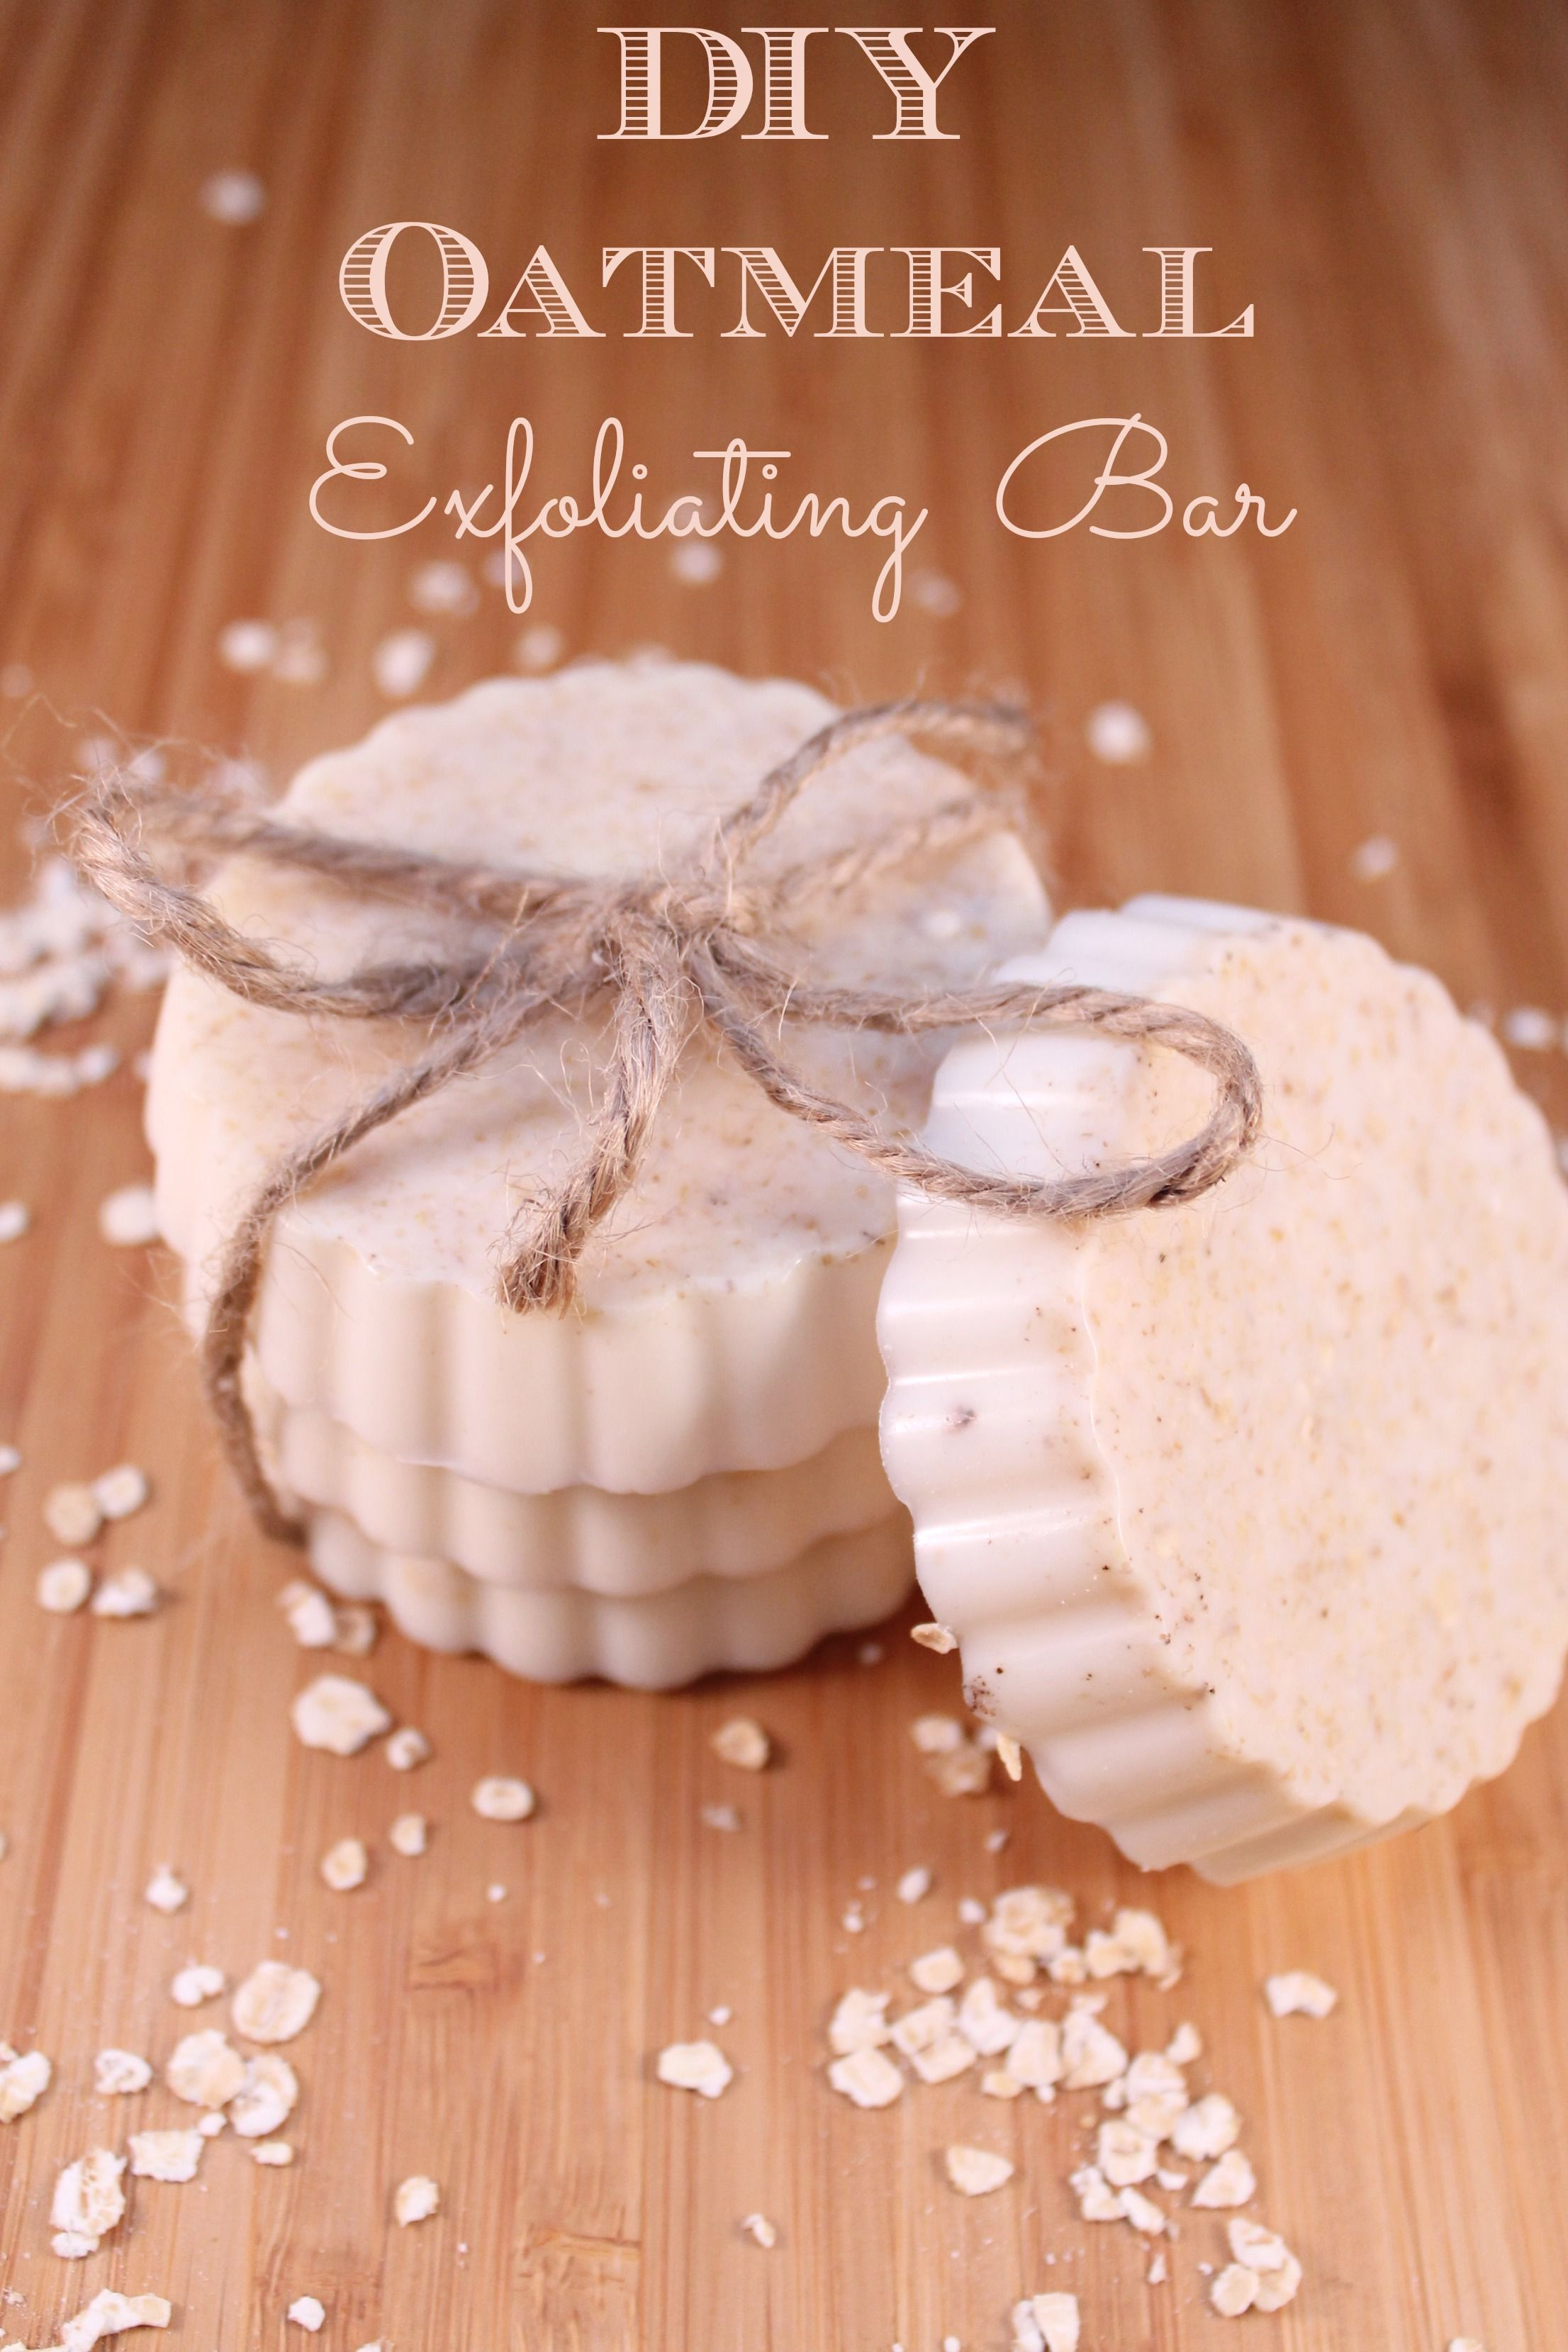 Melt & Pour - Oatmeal Exfoliating Bar